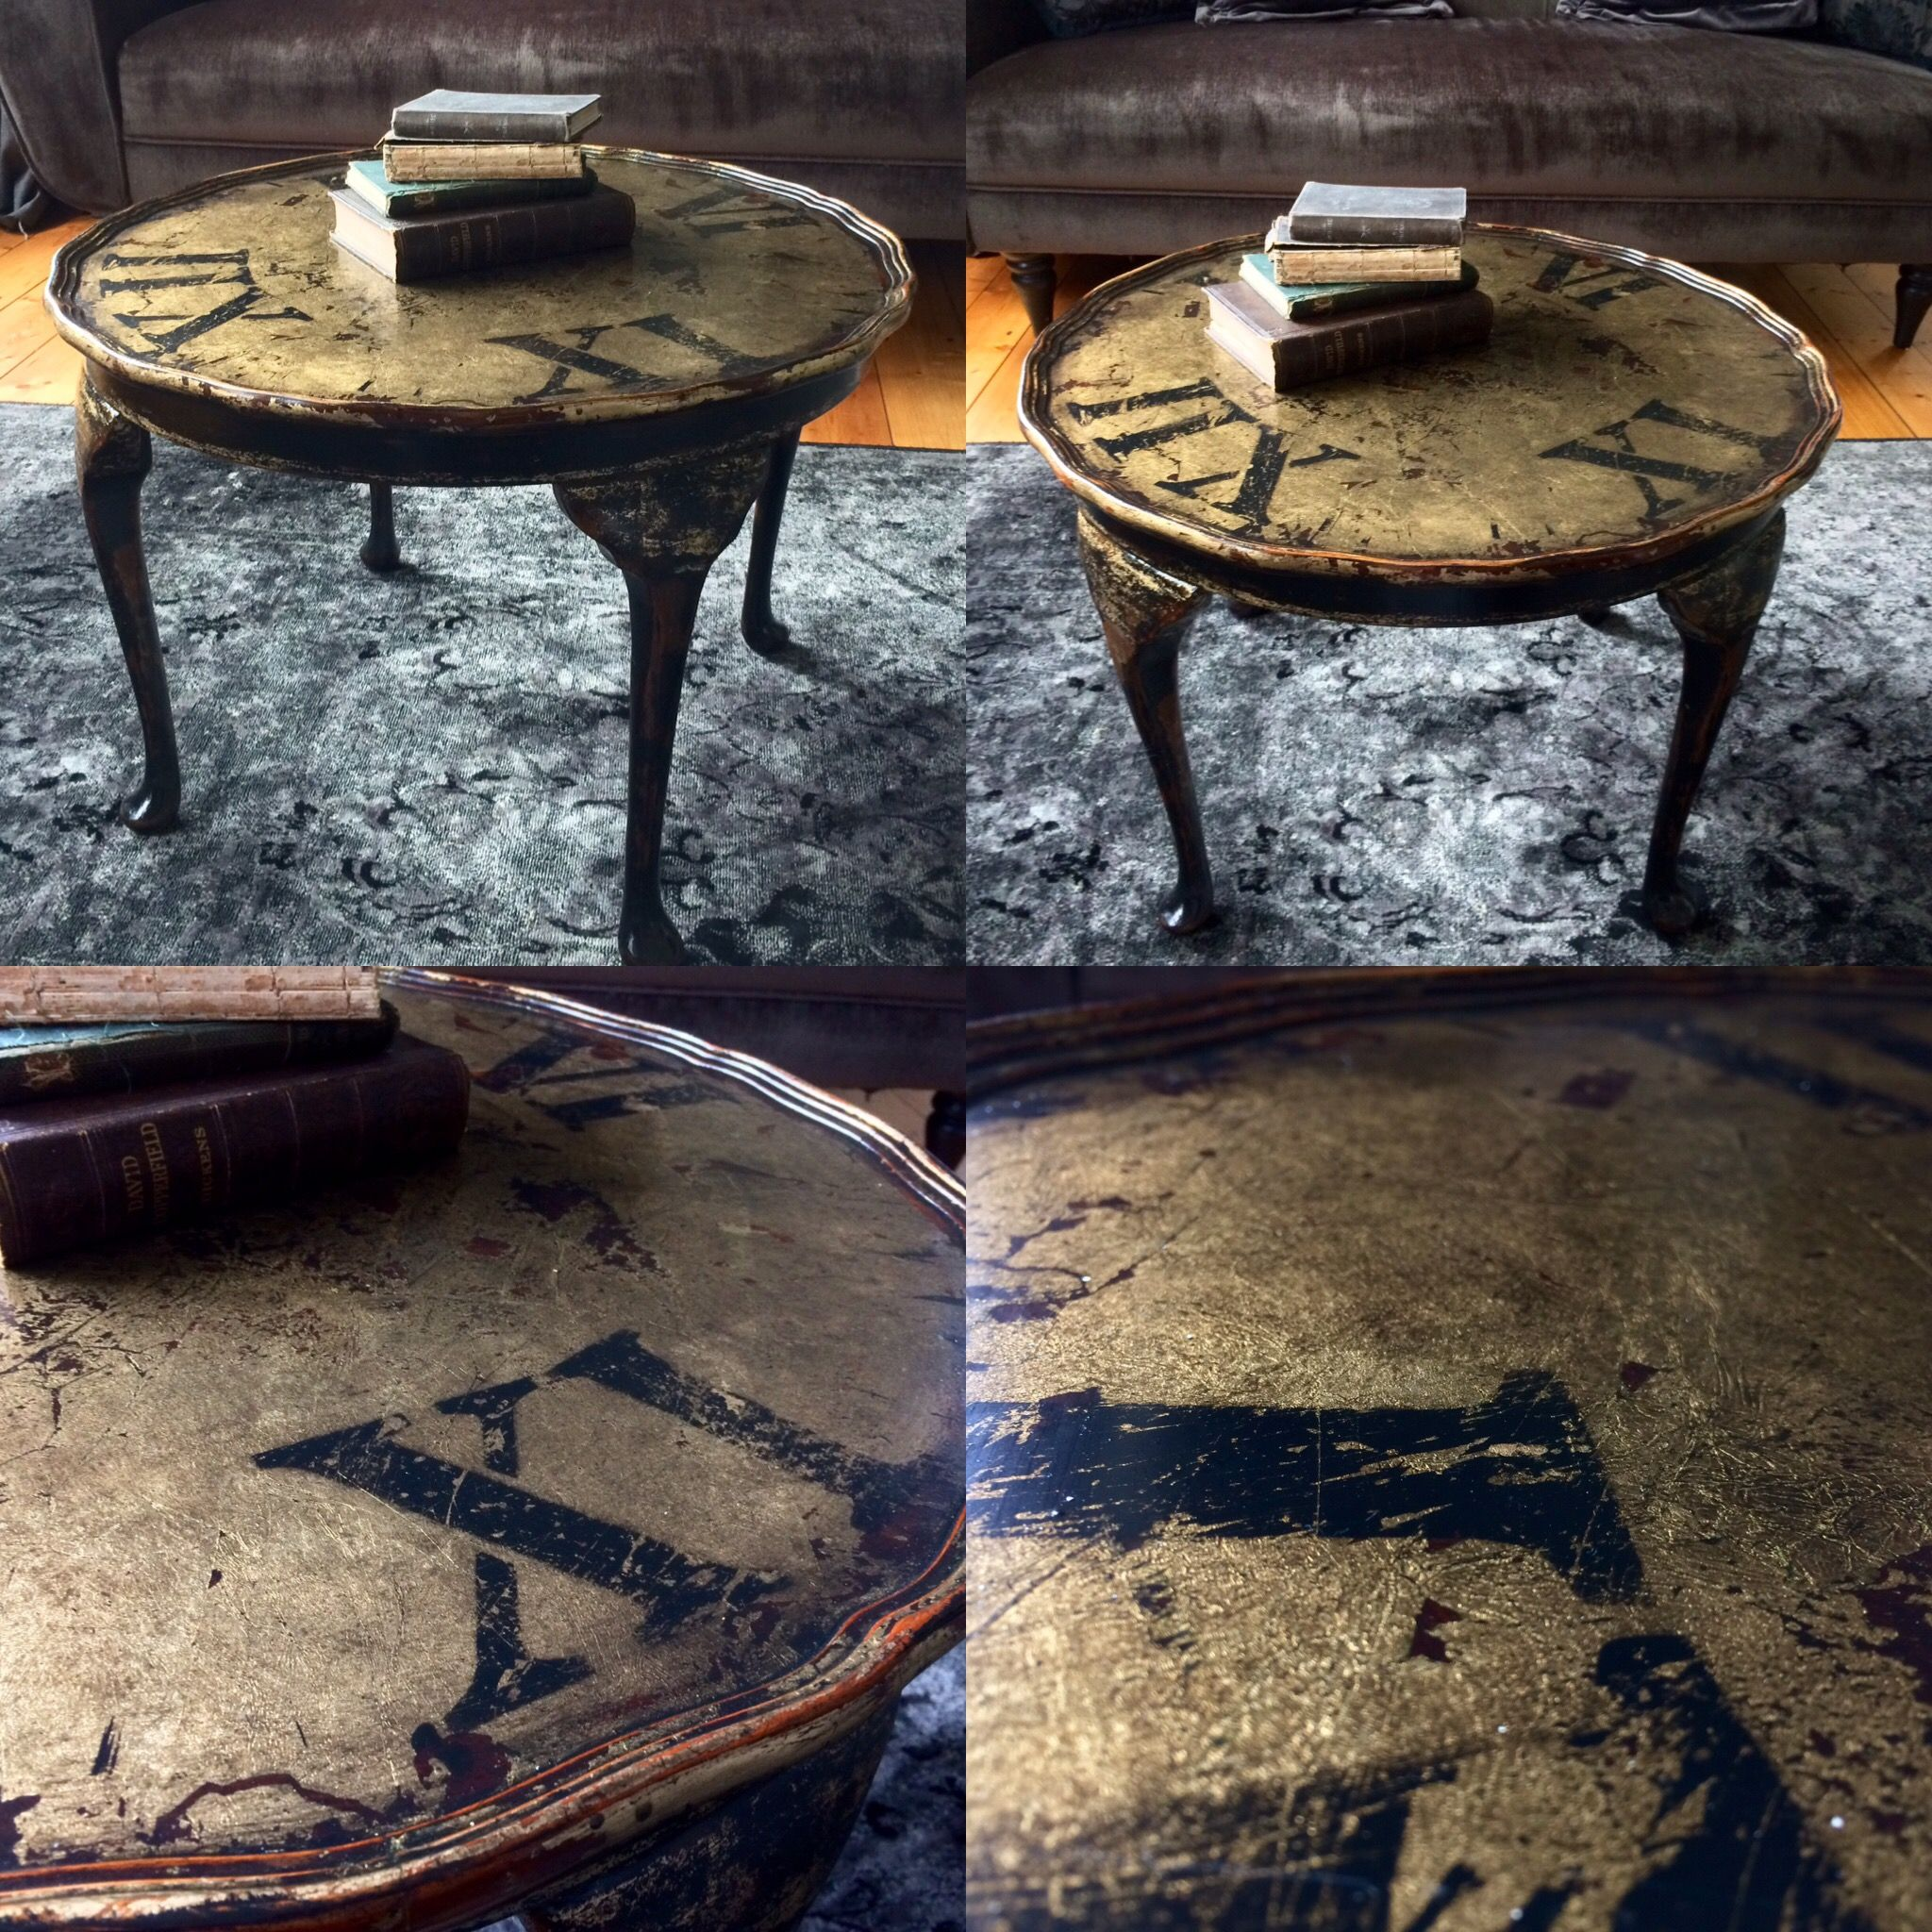 Gold Shabby Chic Coffee Table: Shabby Chic, Alice In Wonderland, Vintage Table, Clock